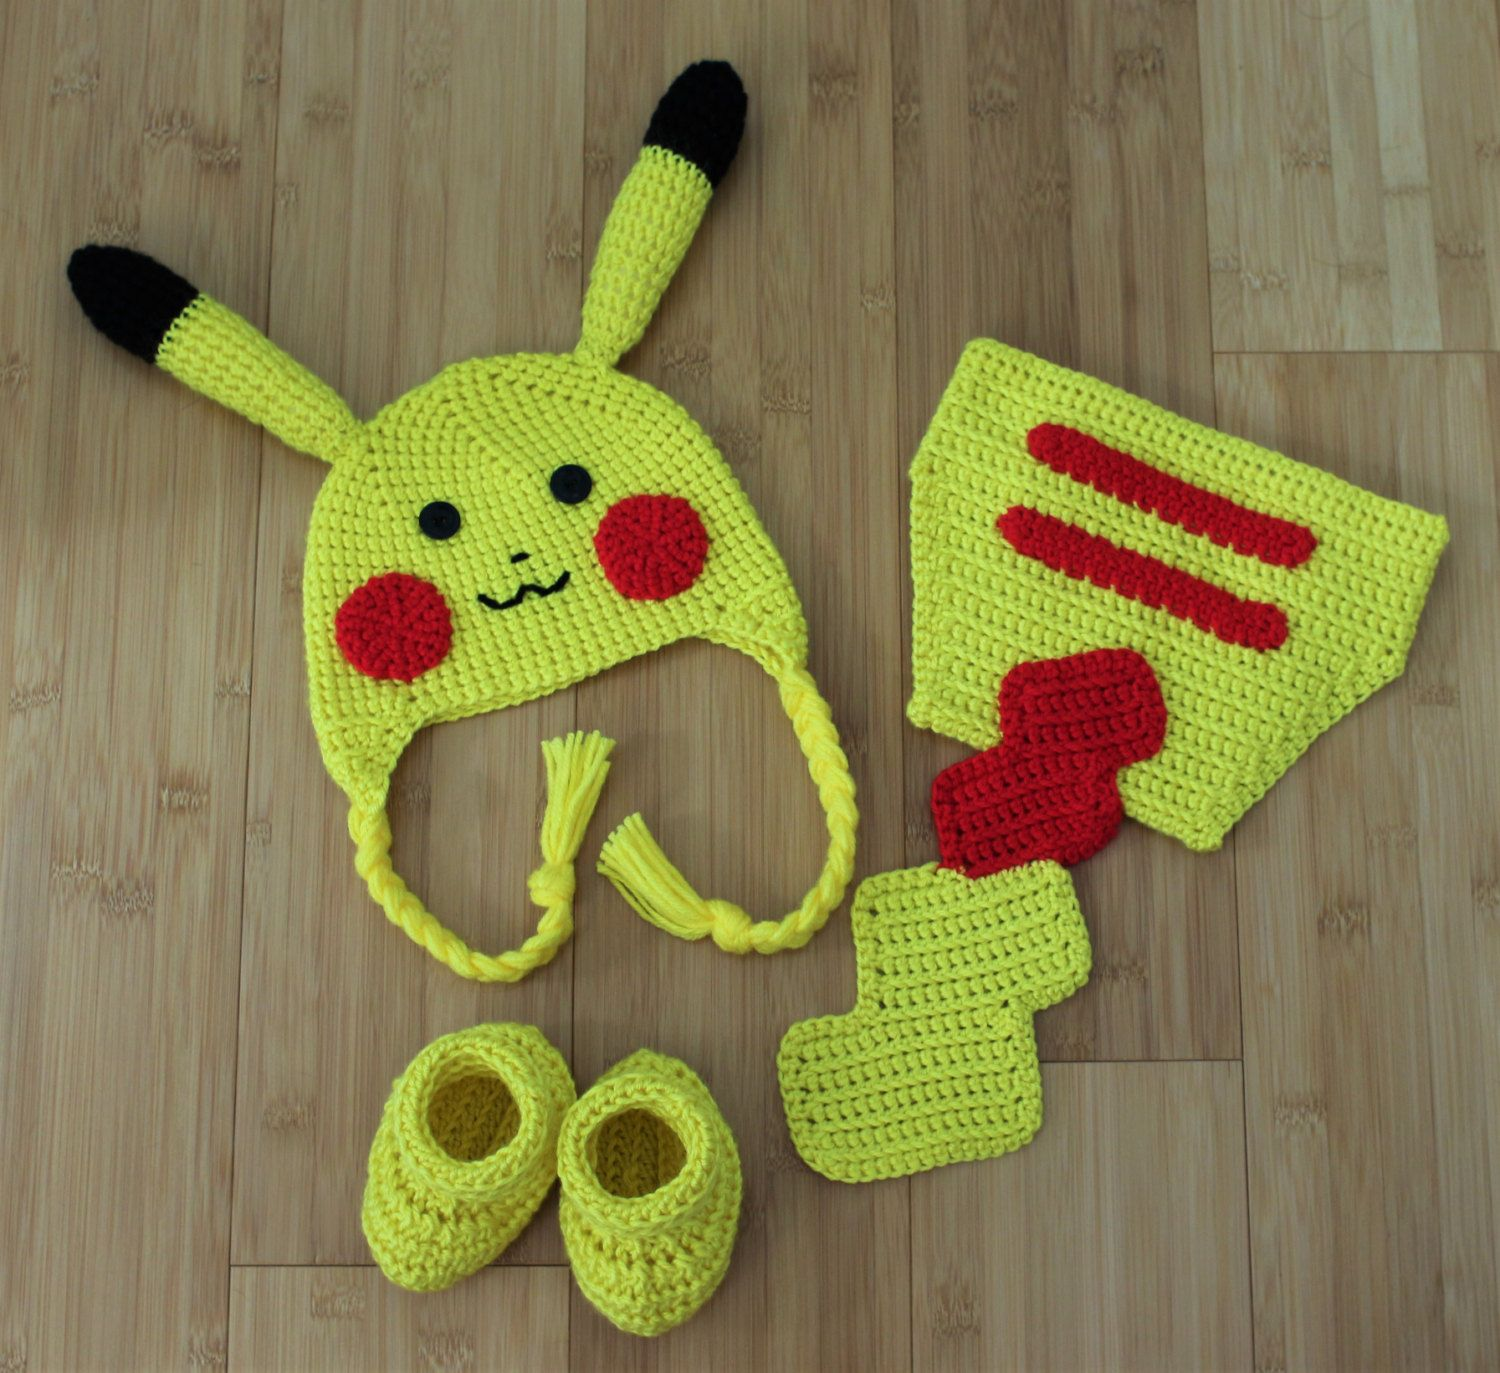 pikachu chibi free crochet pattern - Google Search | Crochet ...